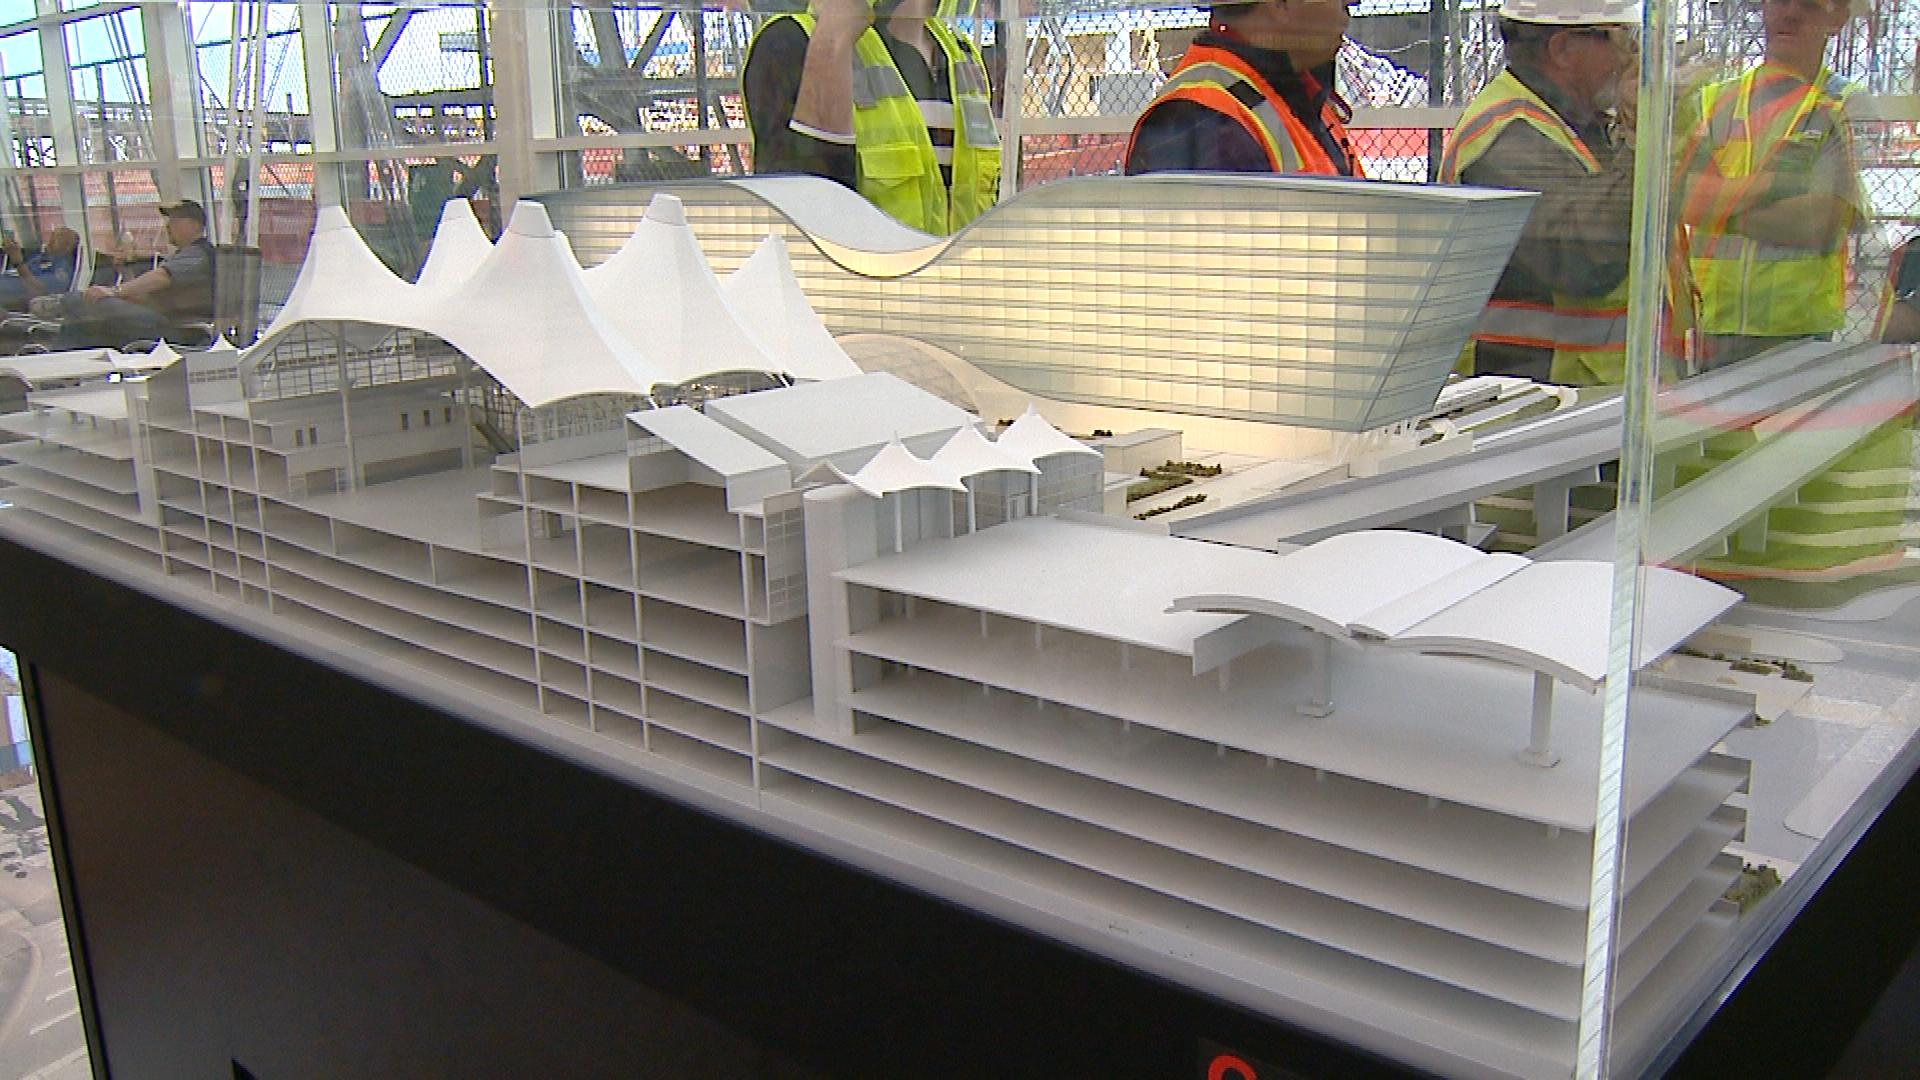 Plans for the airport (credit: CBS)